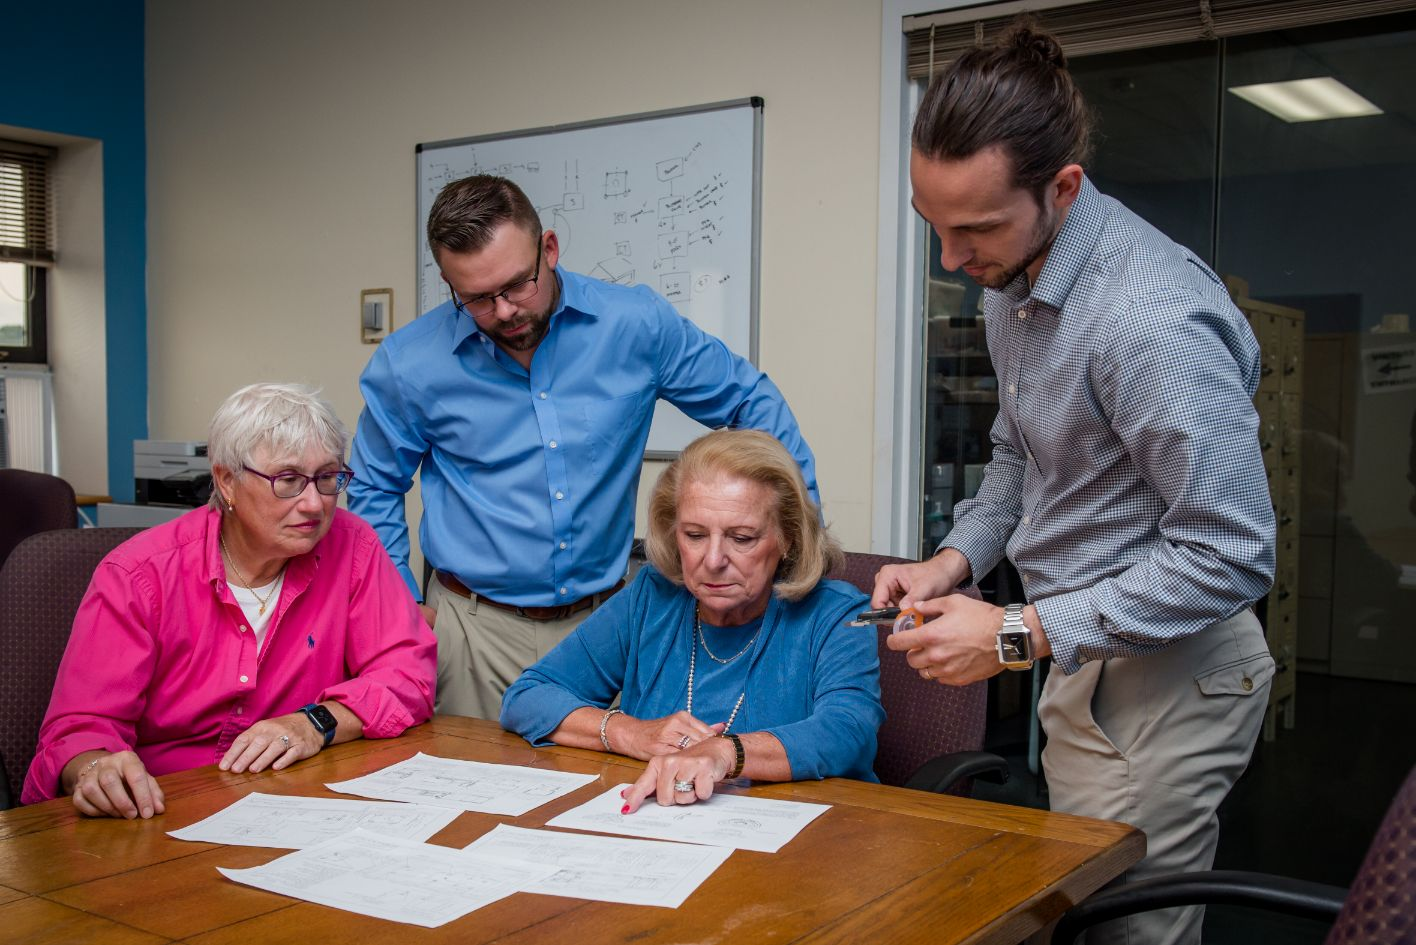 Extreme Molding Approach team members looking at injection molding plans